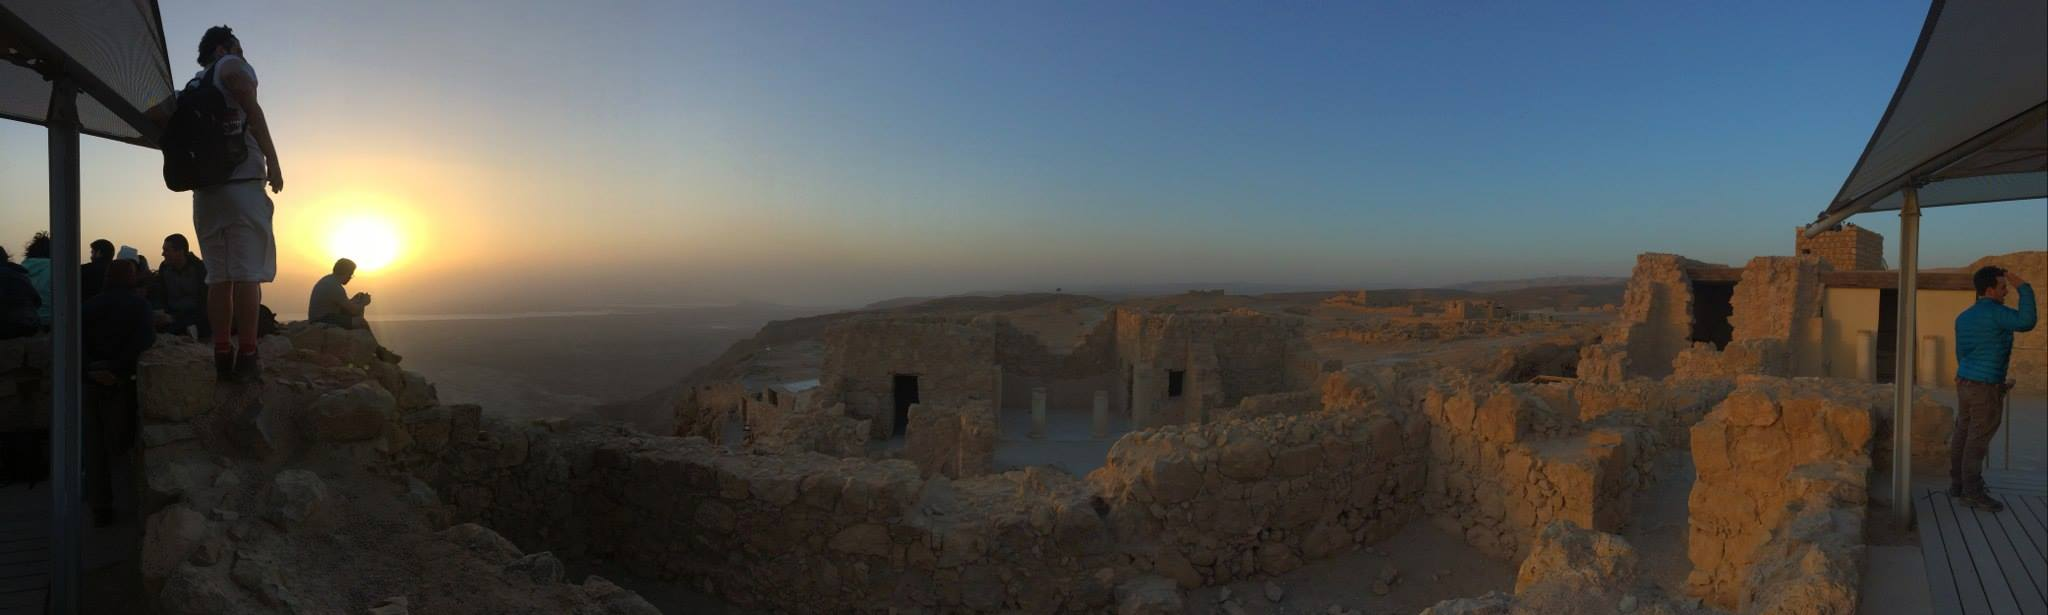 Attempting to capture the breathtaking beauty of Masada and its view of the Judean Desert.